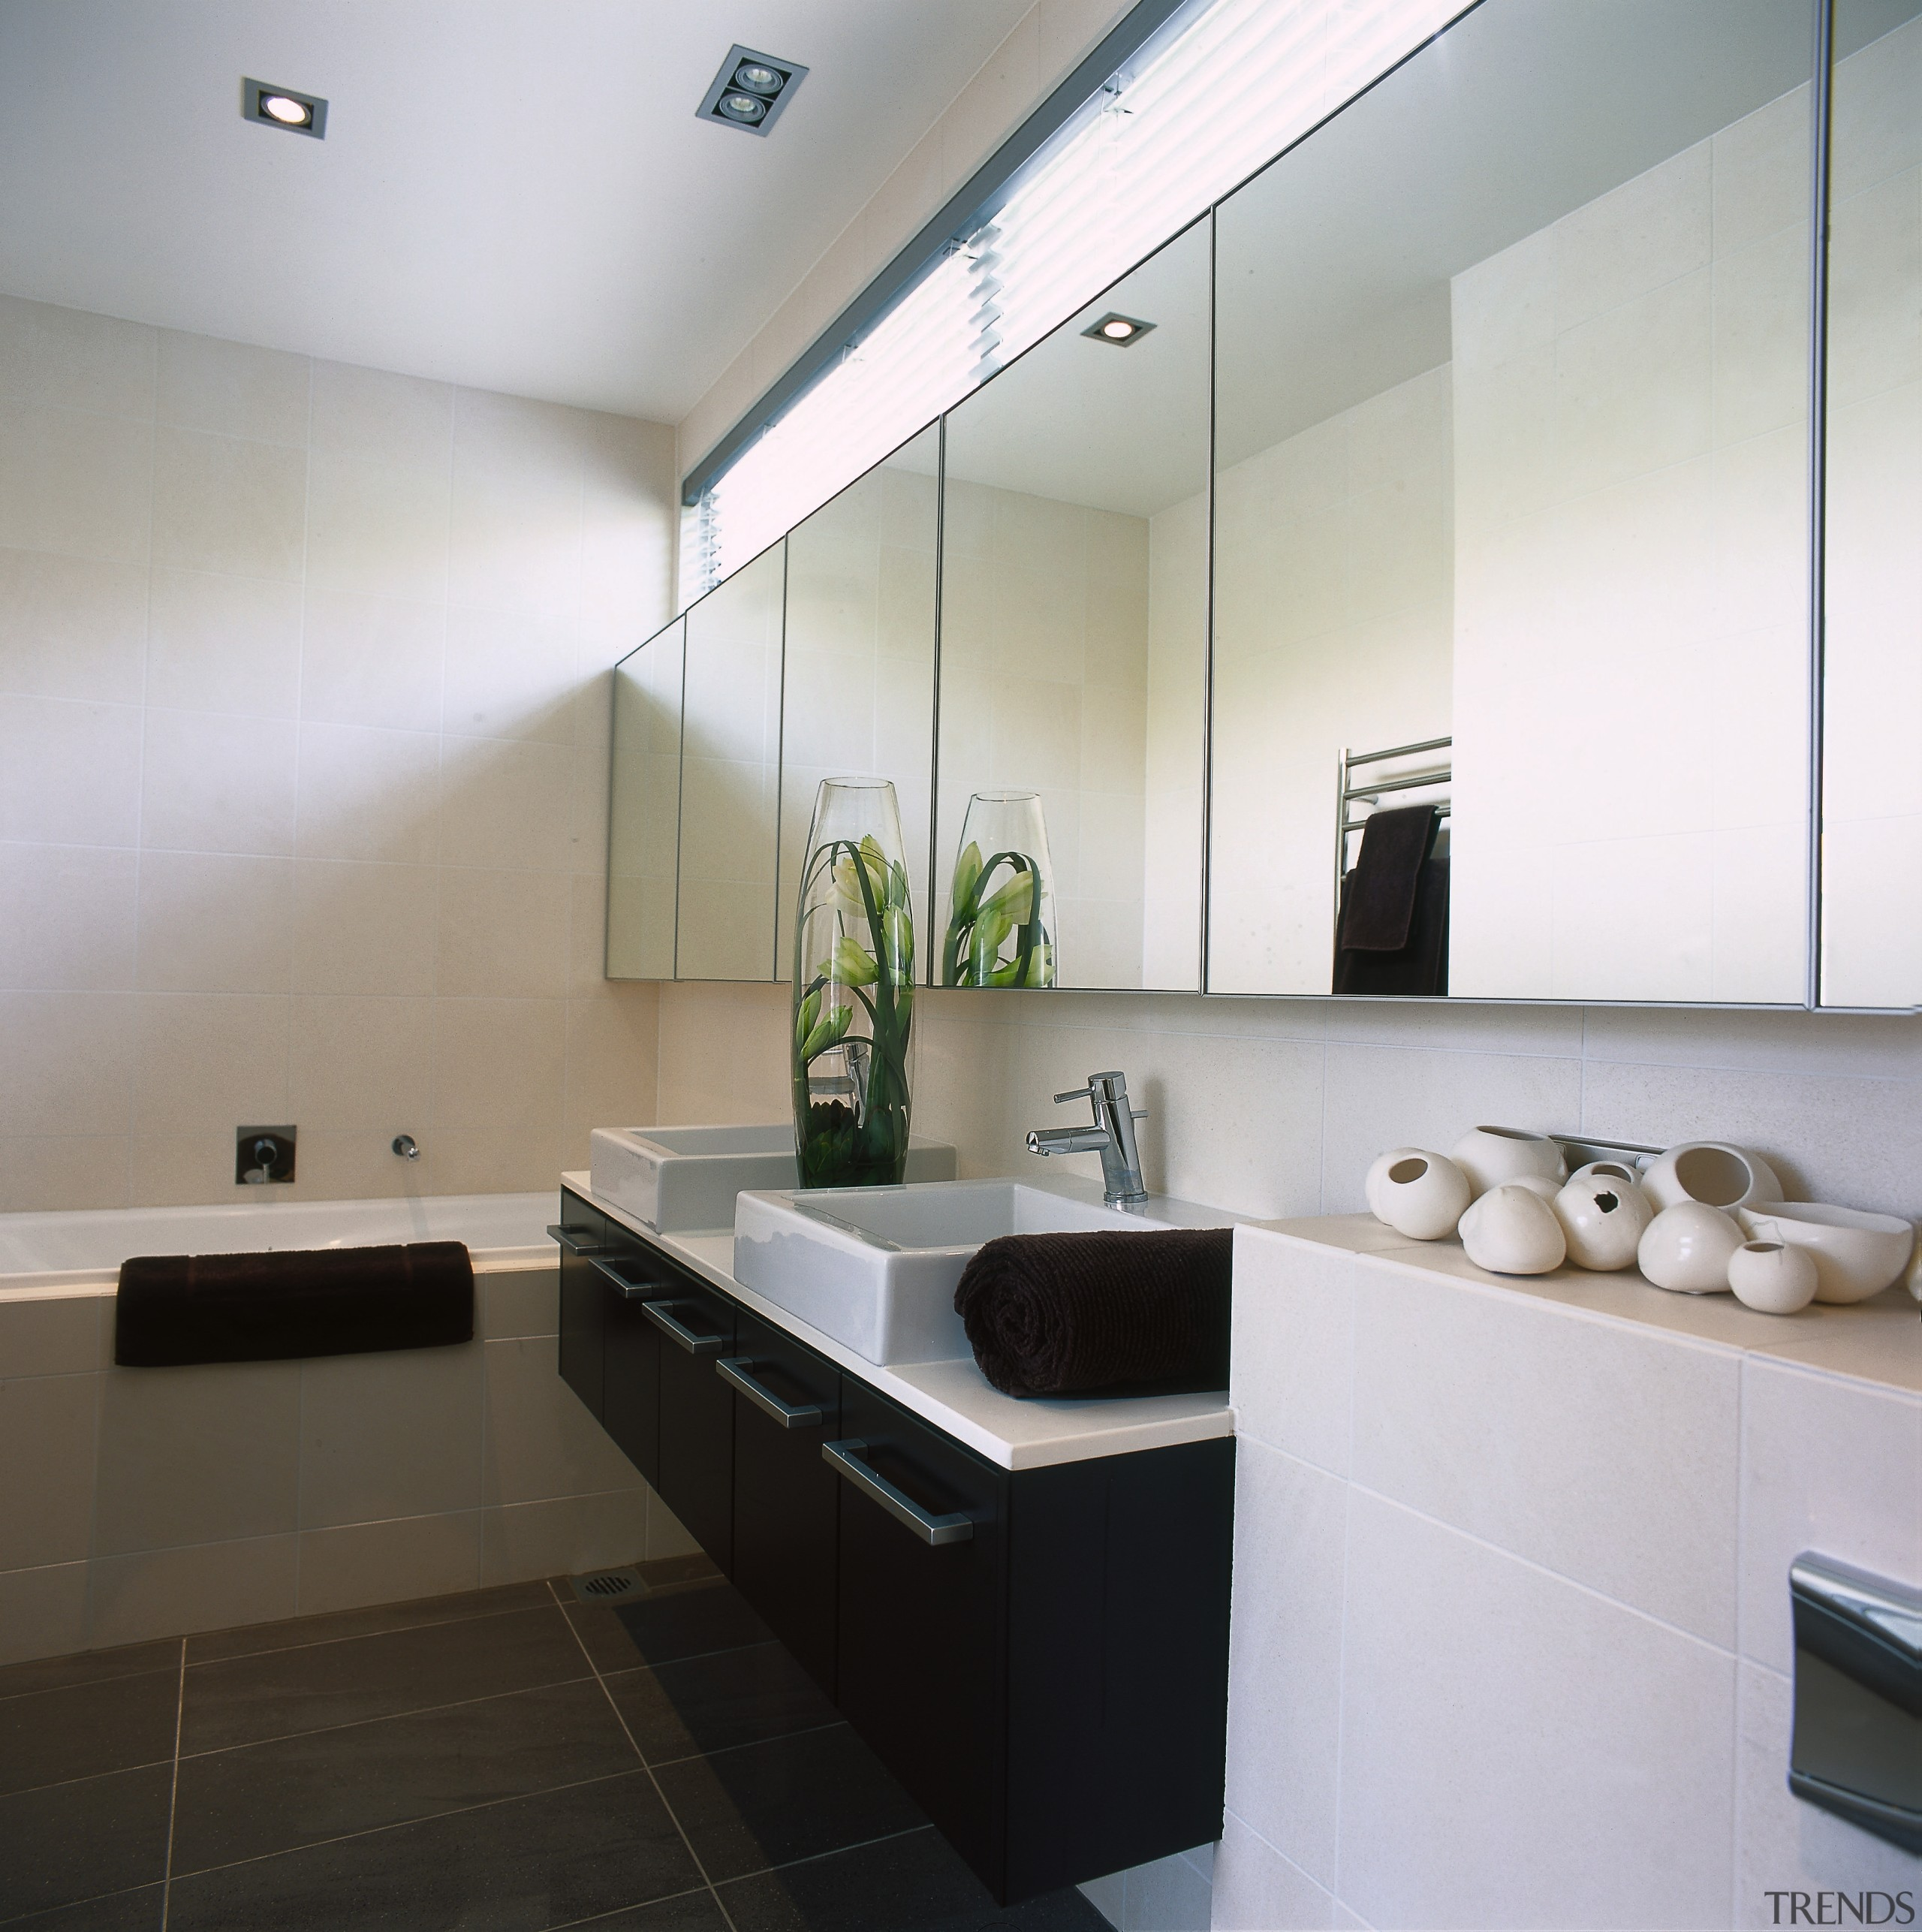 View of this bathroom - View of this architecture, bathroom, ceiling, countertop, floor, interior design, kitchen, product design, room, sink, gray